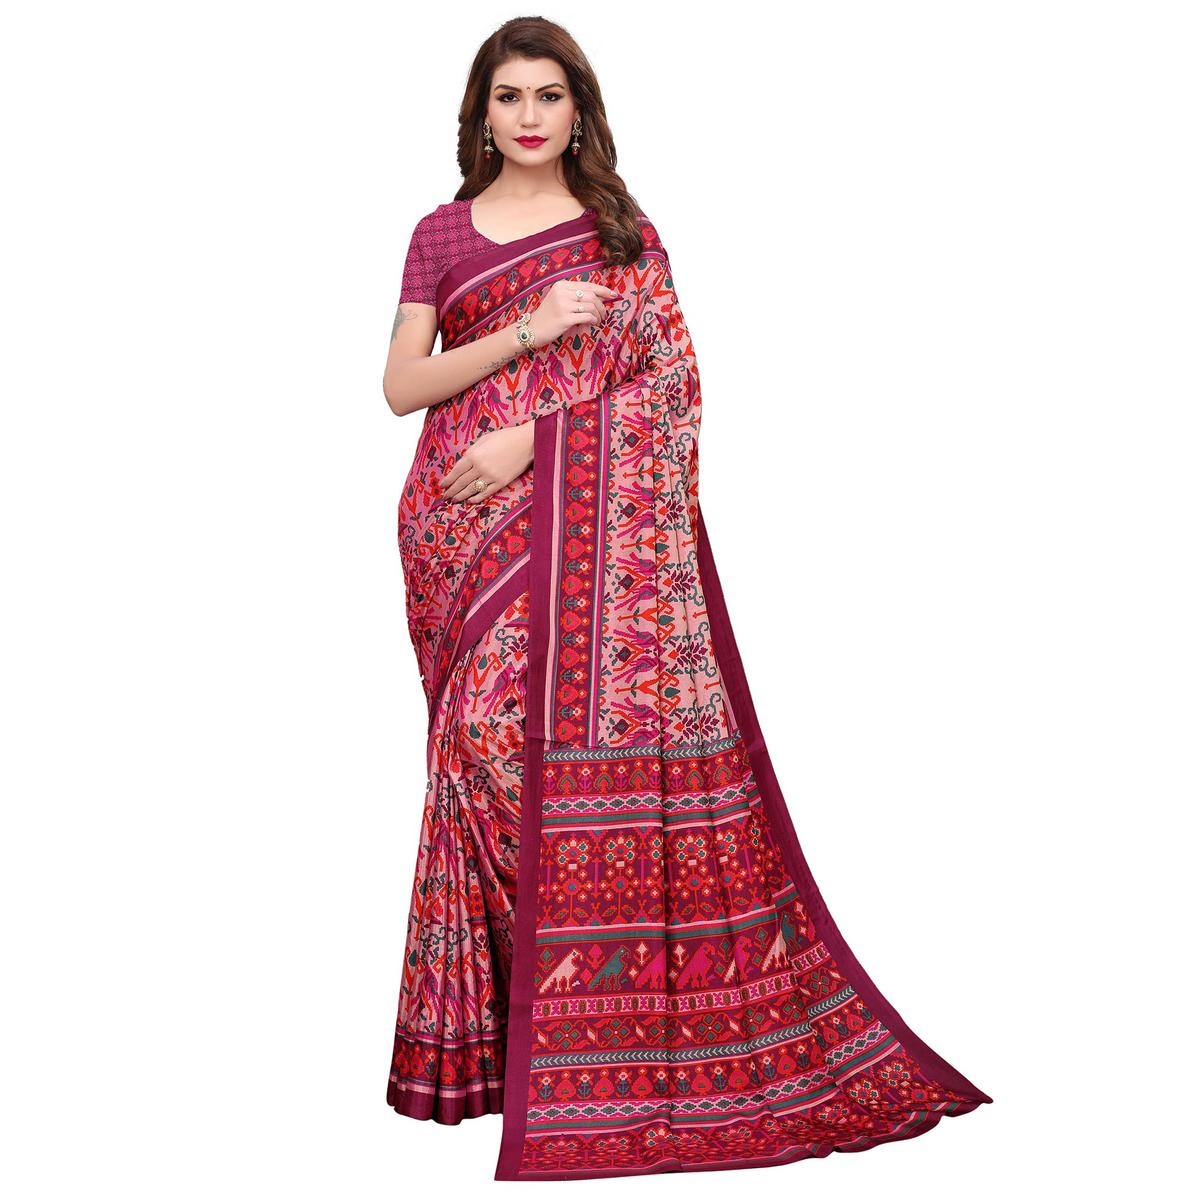 Captivating Pink Colored Casual Printed Silk Saree